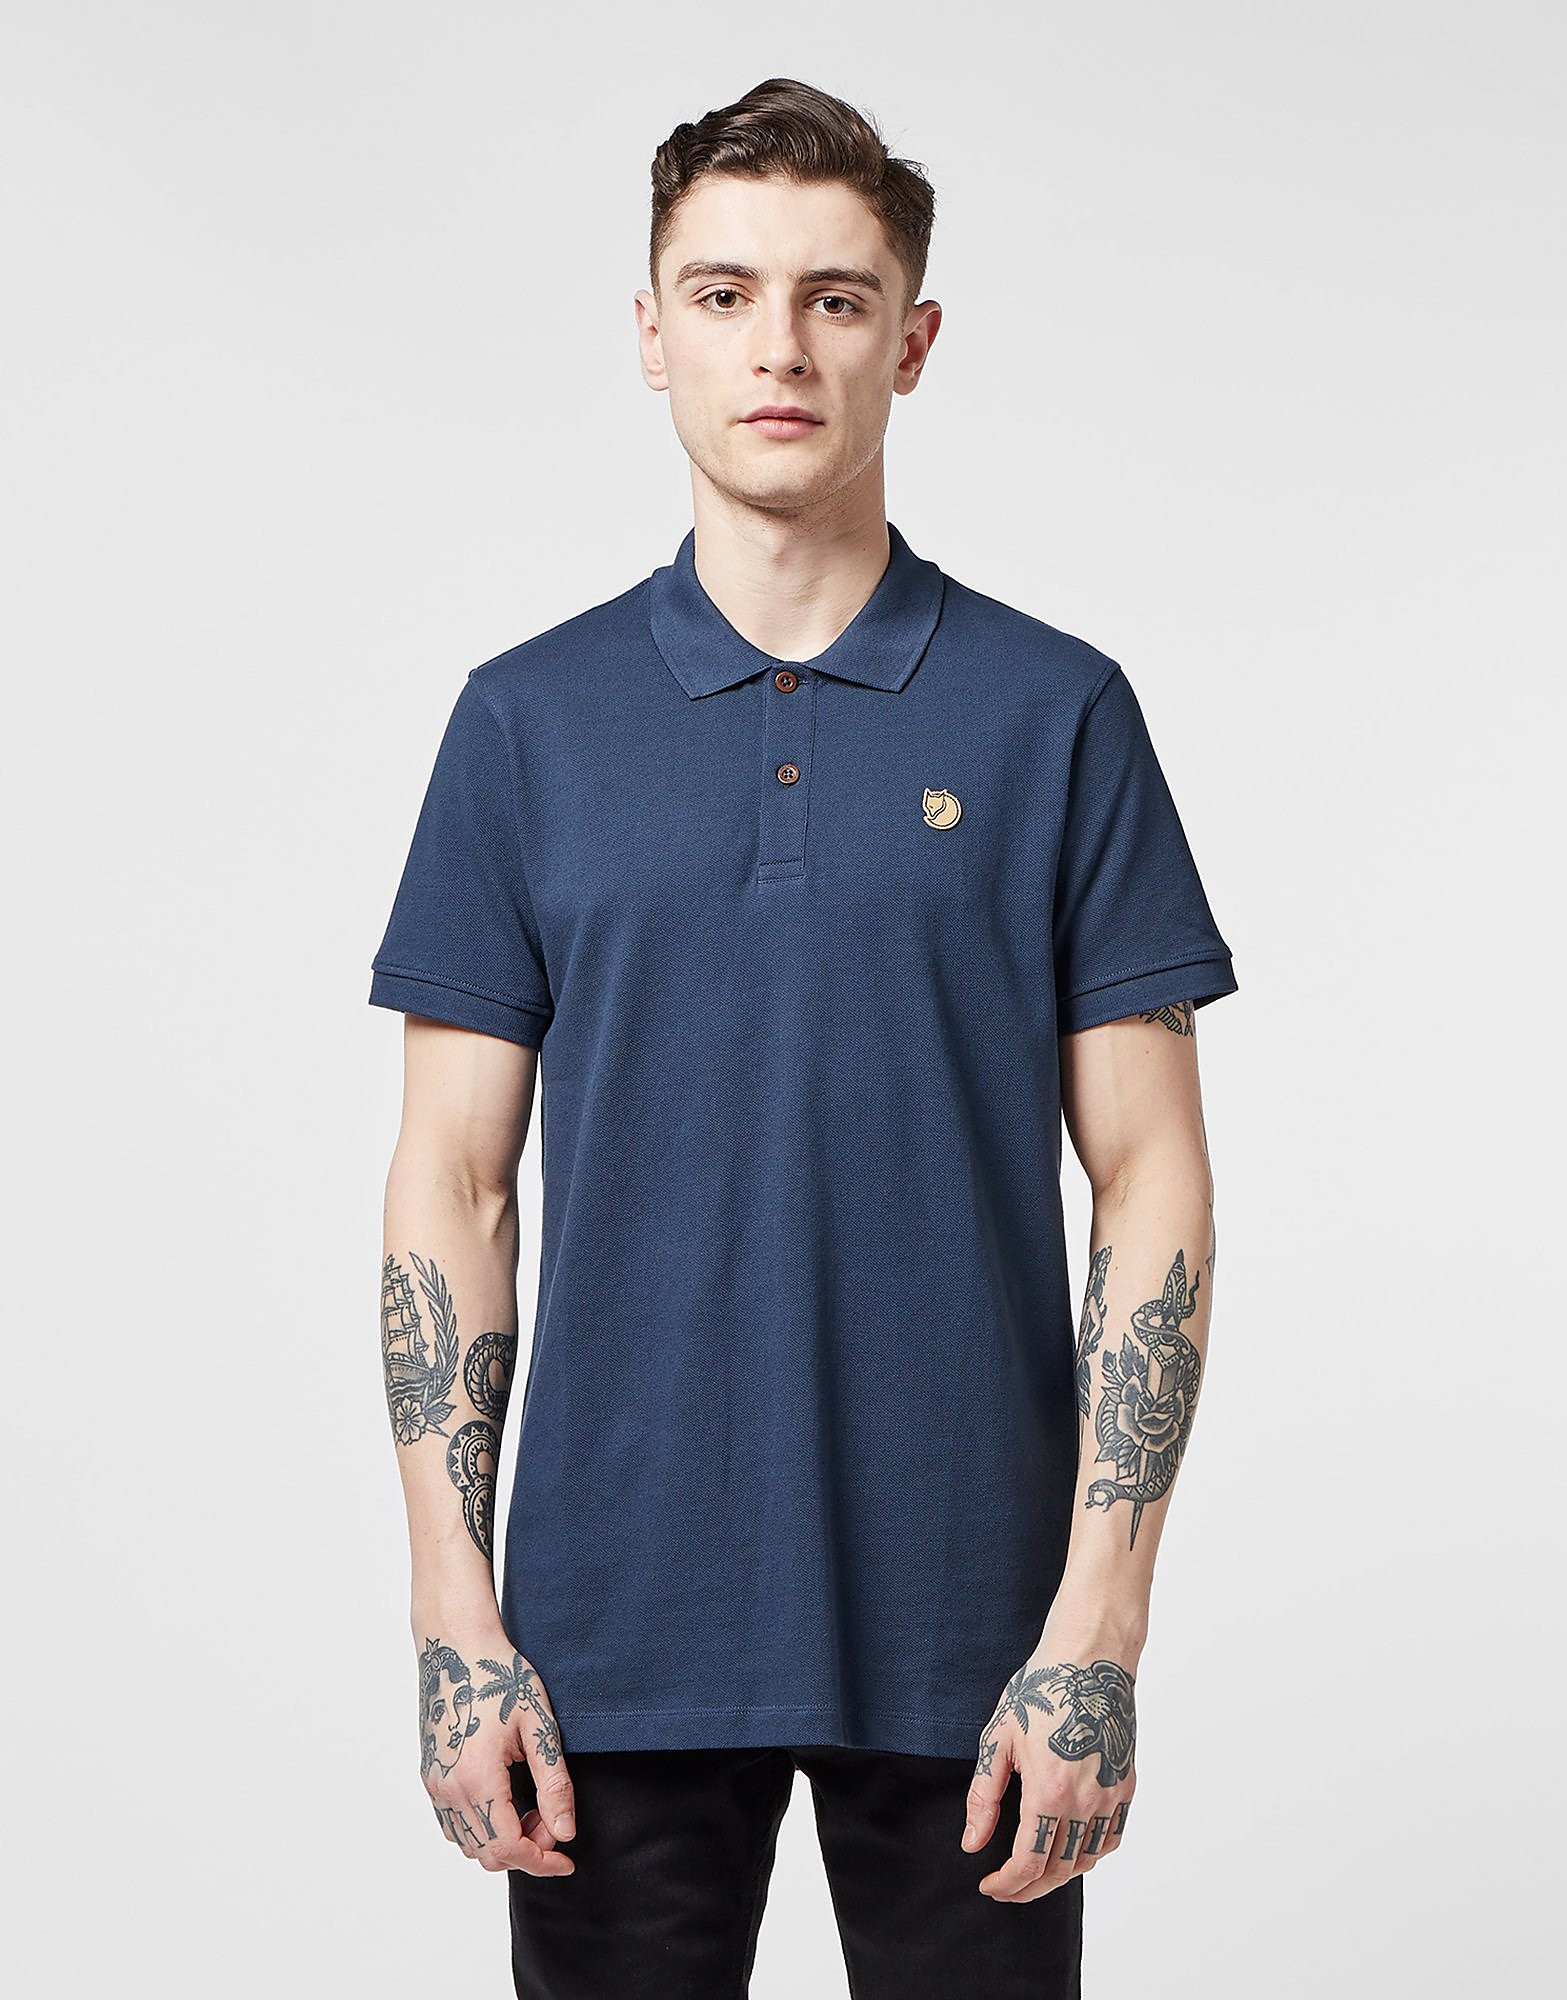 Fjallraven Ovik Short Sleeve Polo Shirt